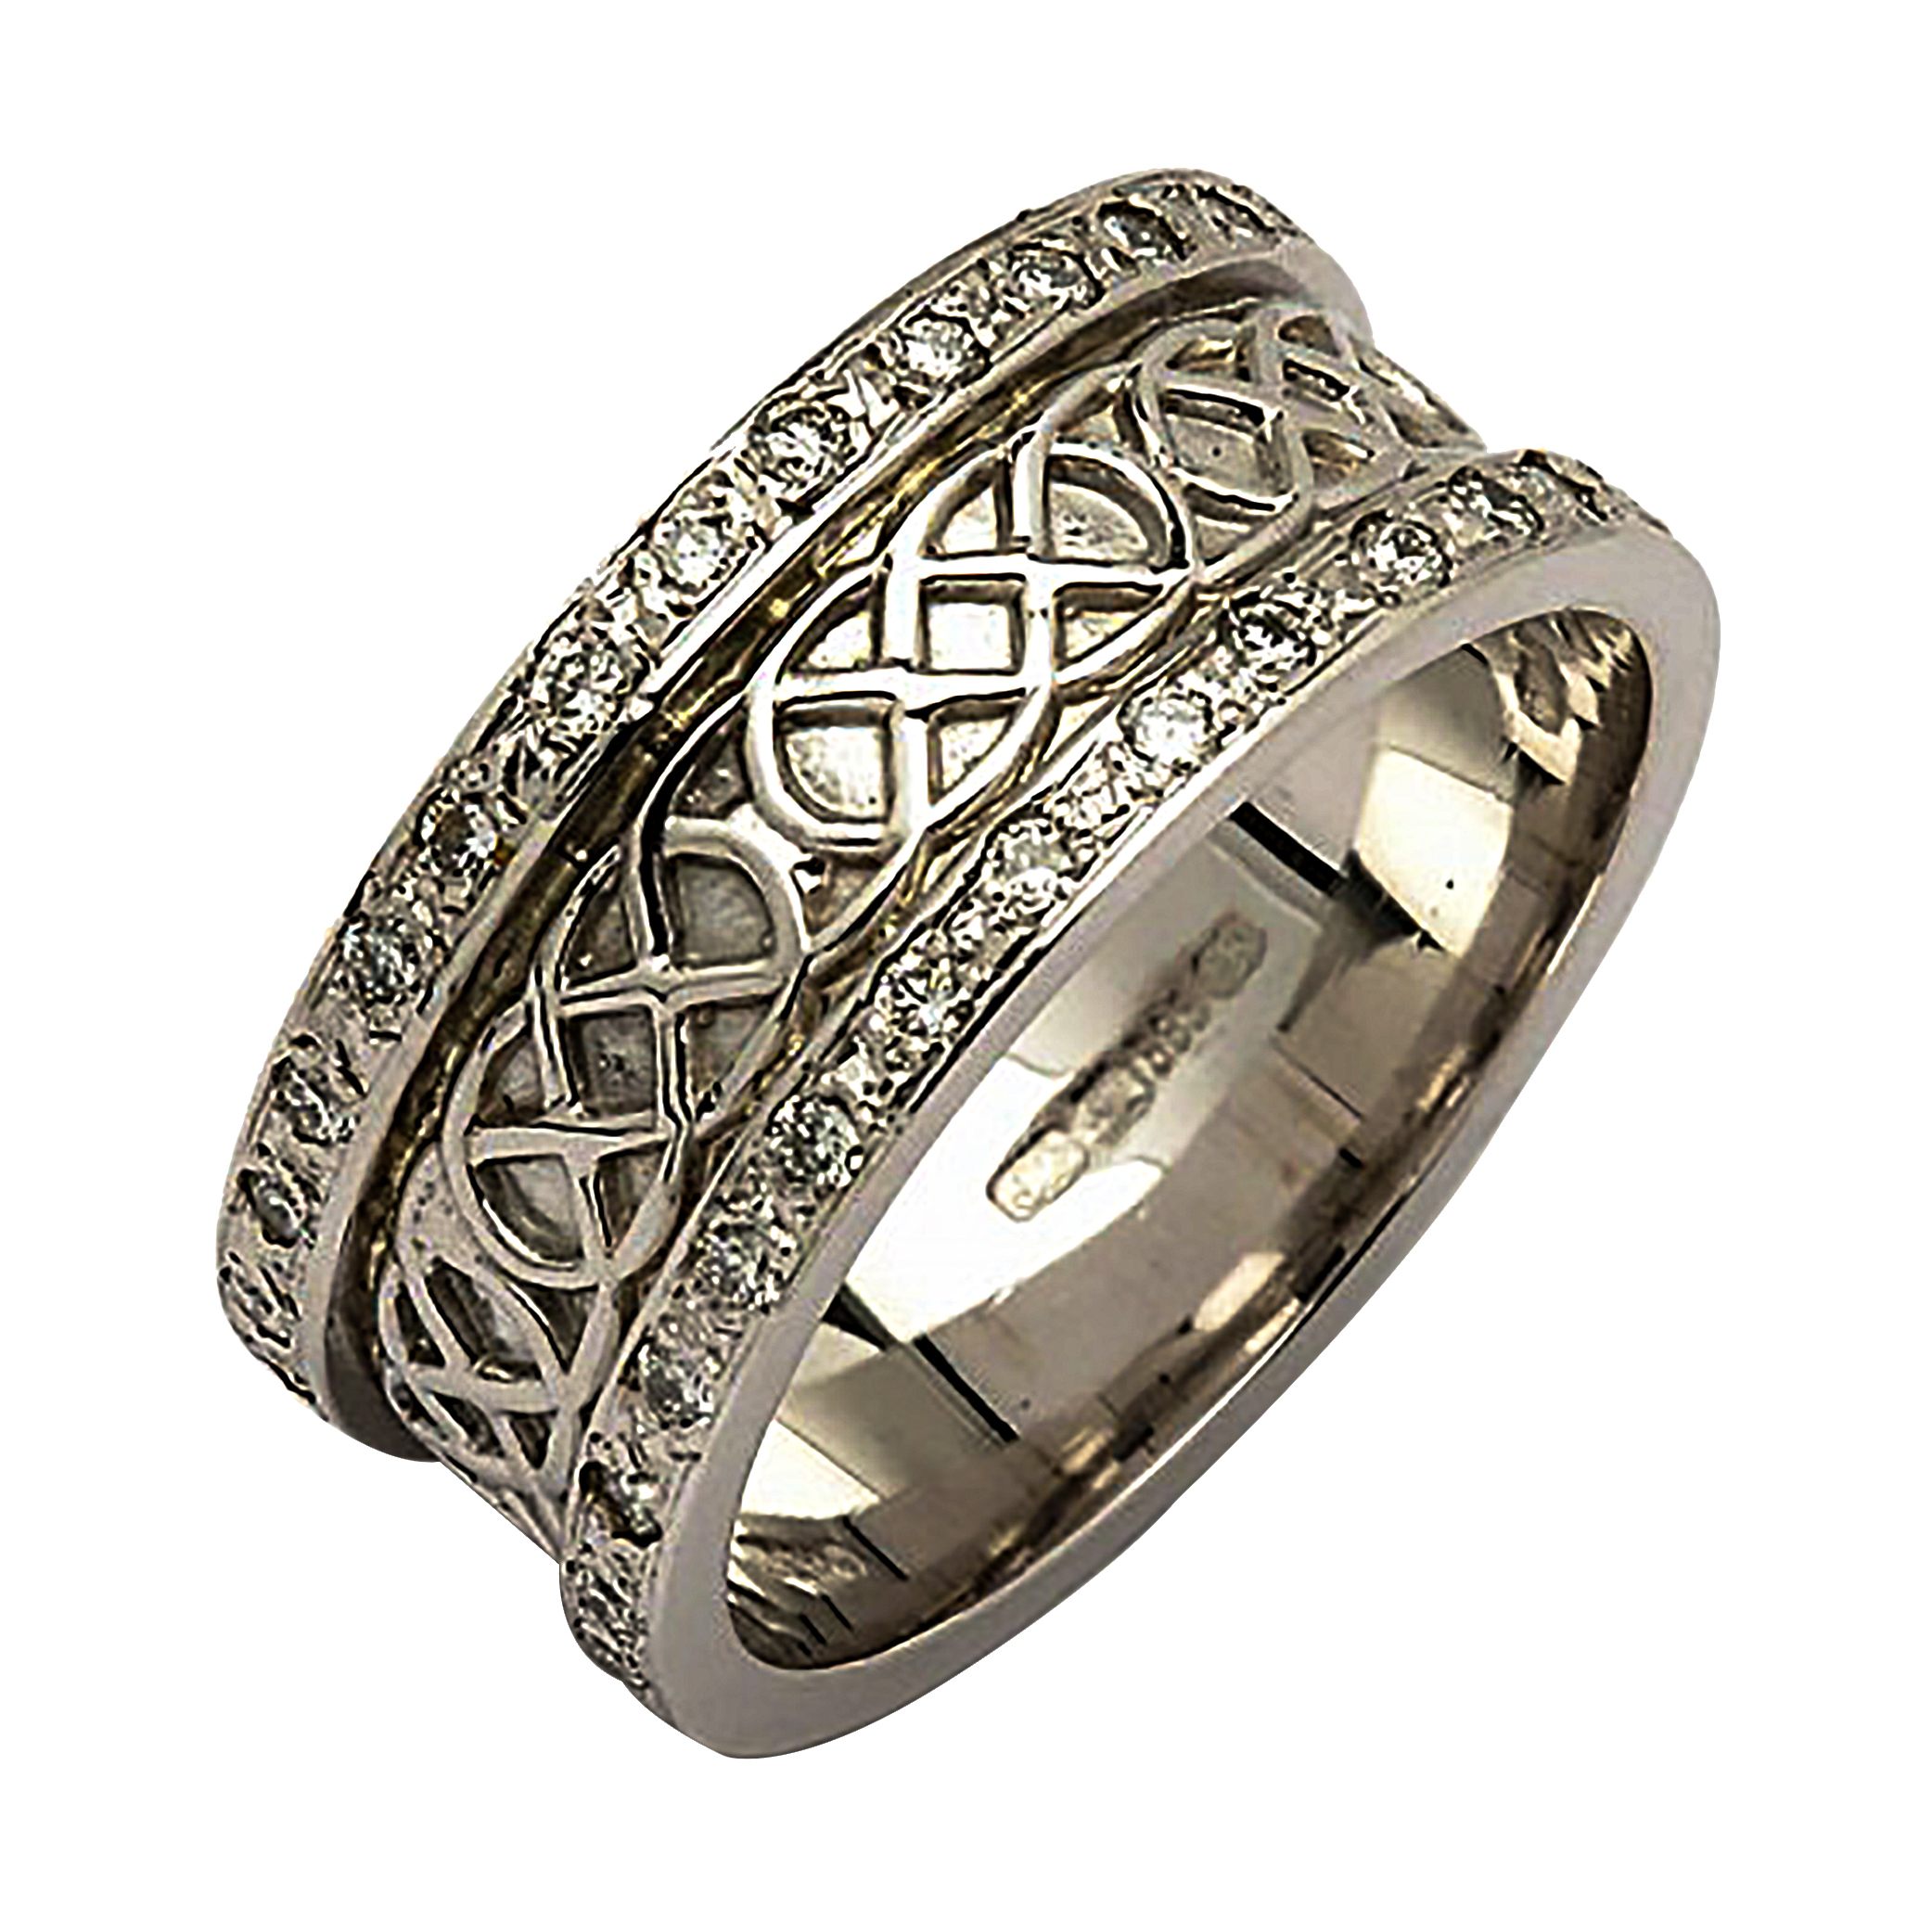 tdw diamond sterling silver ring infinity knot shipping free today cambridge watches jewelry overstock product love